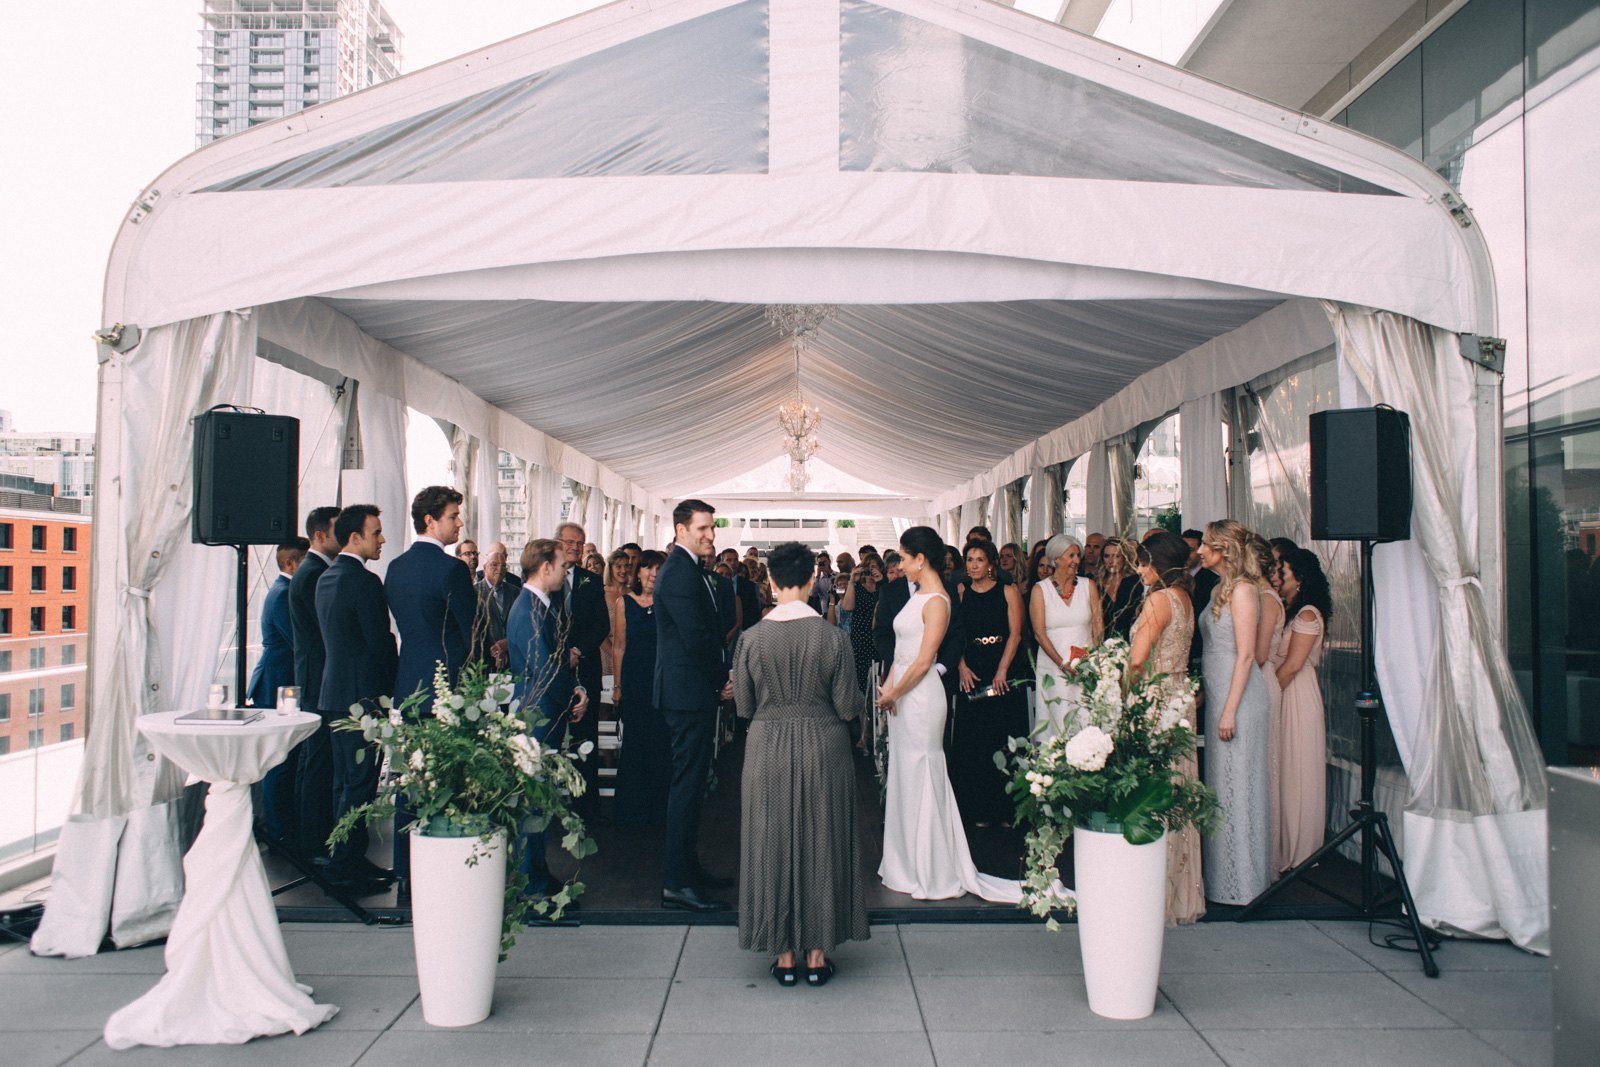 Malaparte-wedding-photography-Toronto-by-Sam-Wong-of-Artanis-Collective_50.jpg